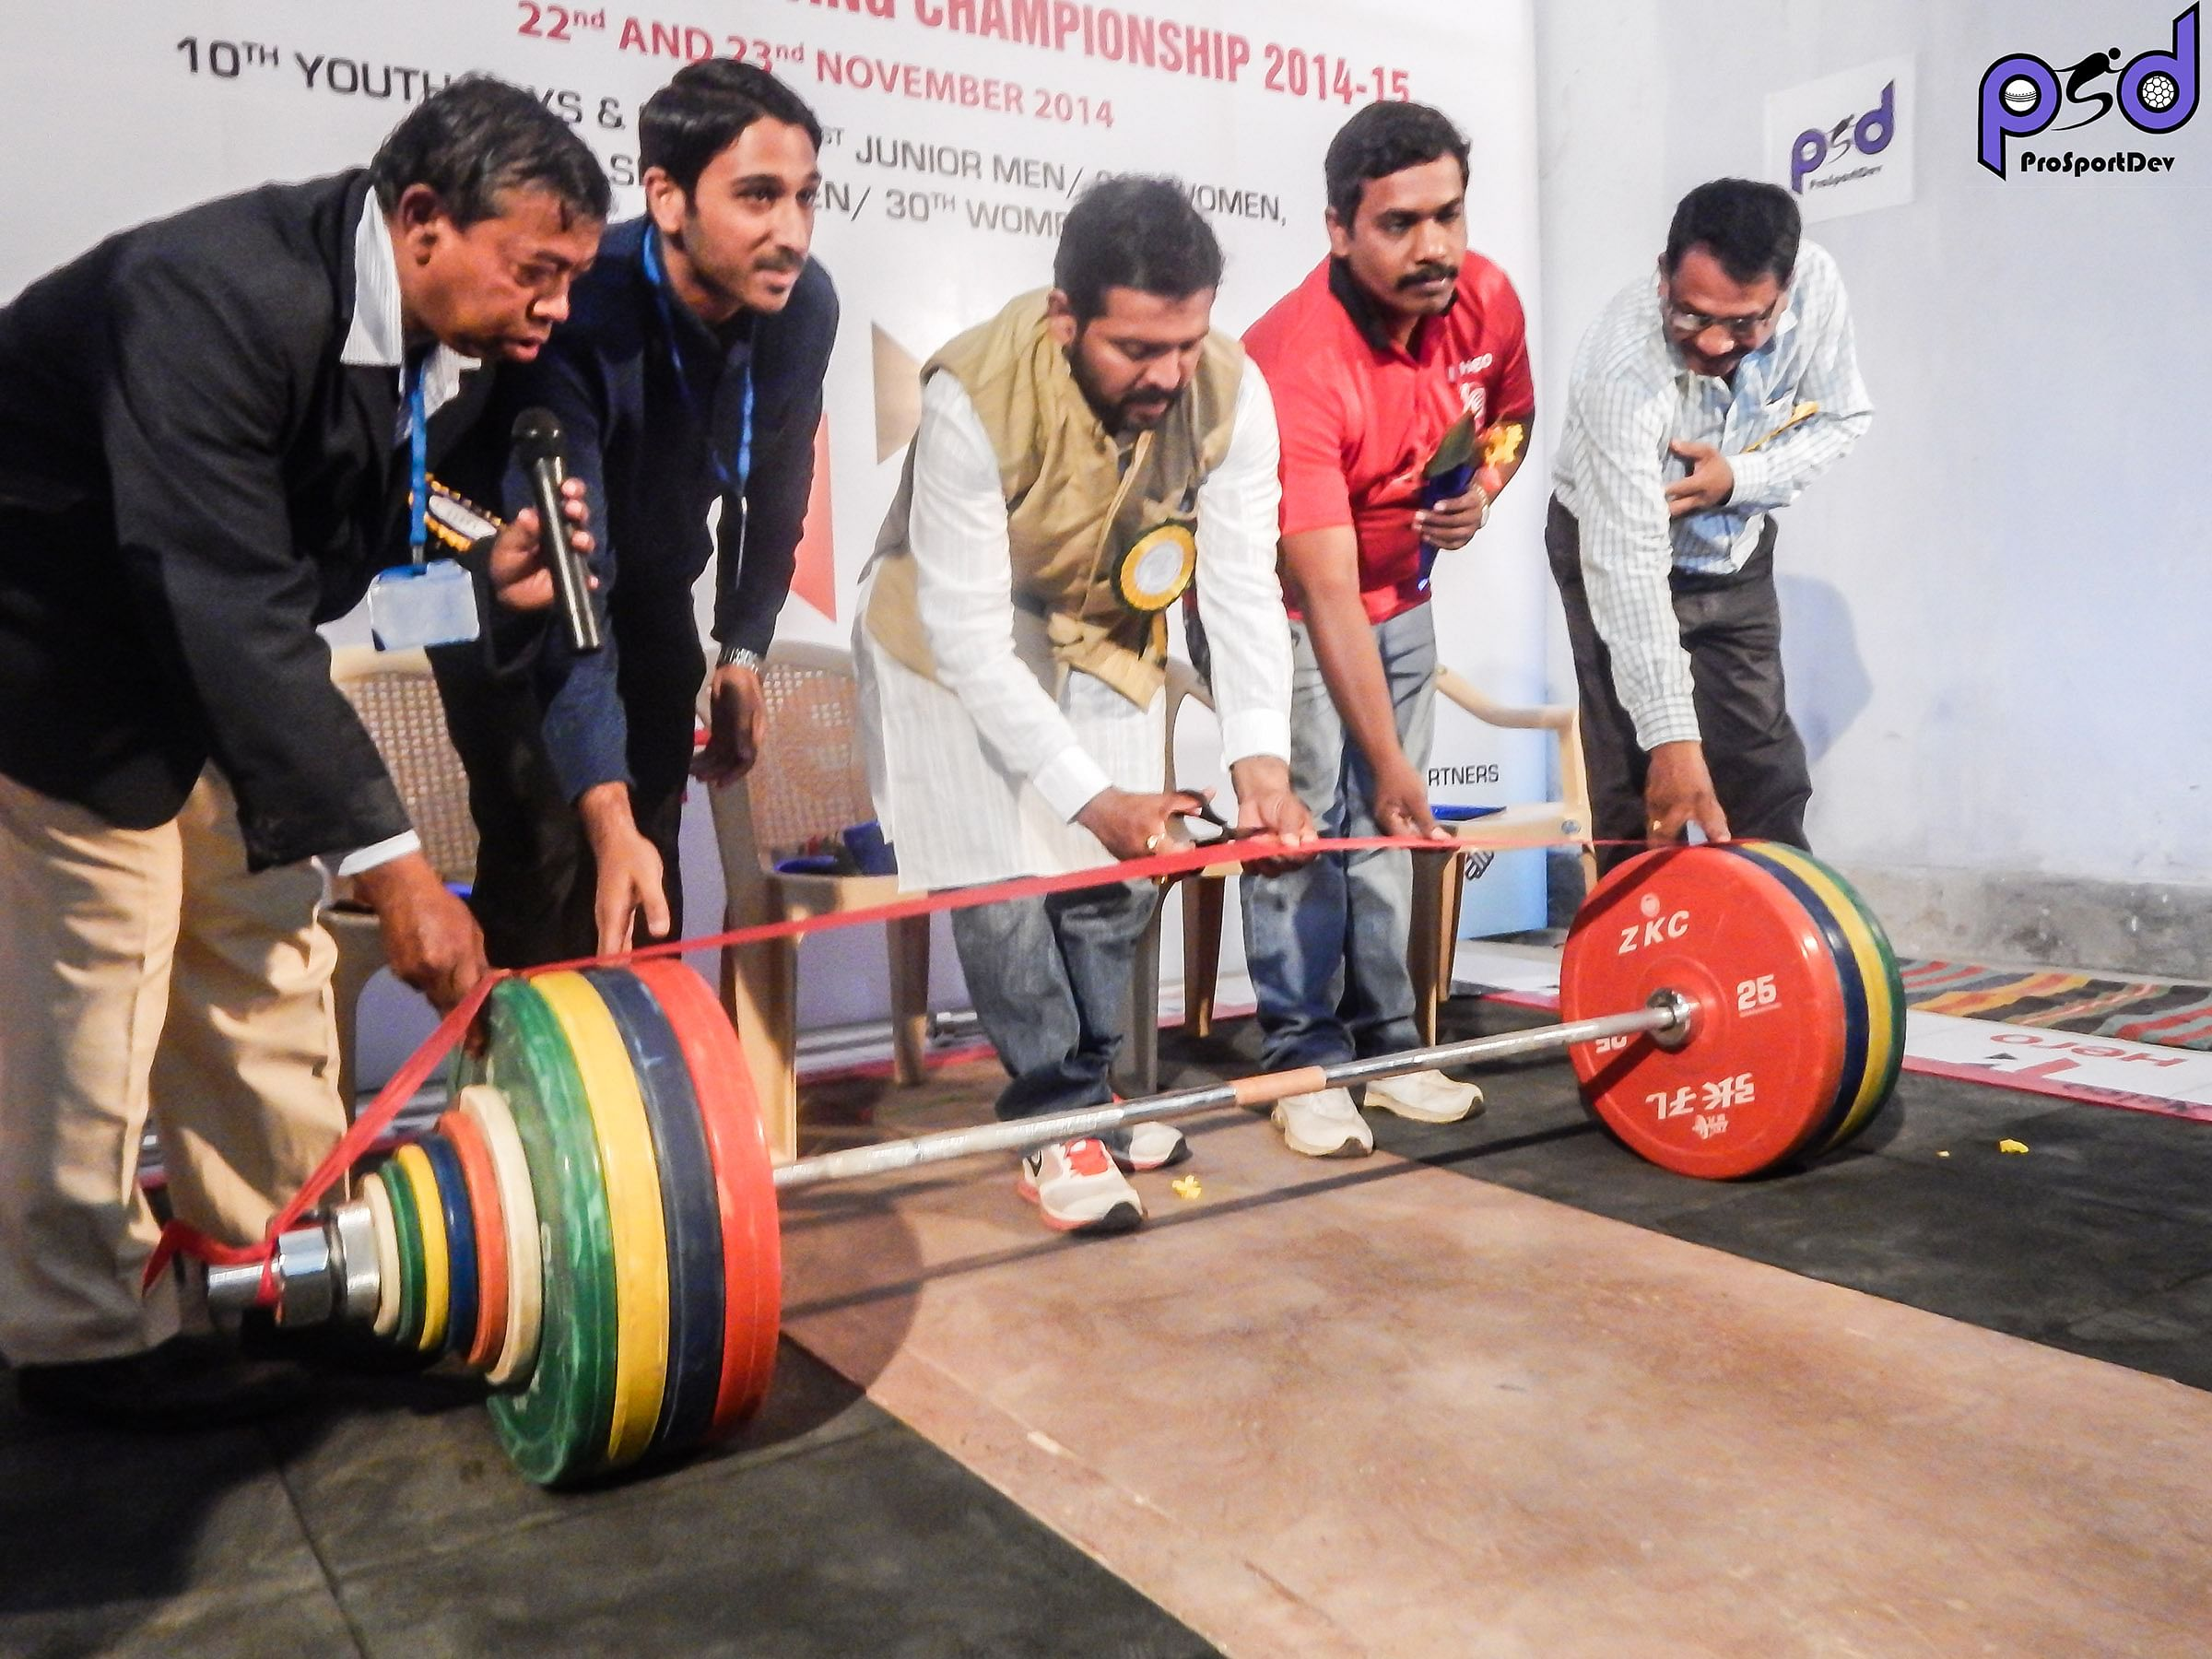 Odisha State Weightlifting Championships 2014-15